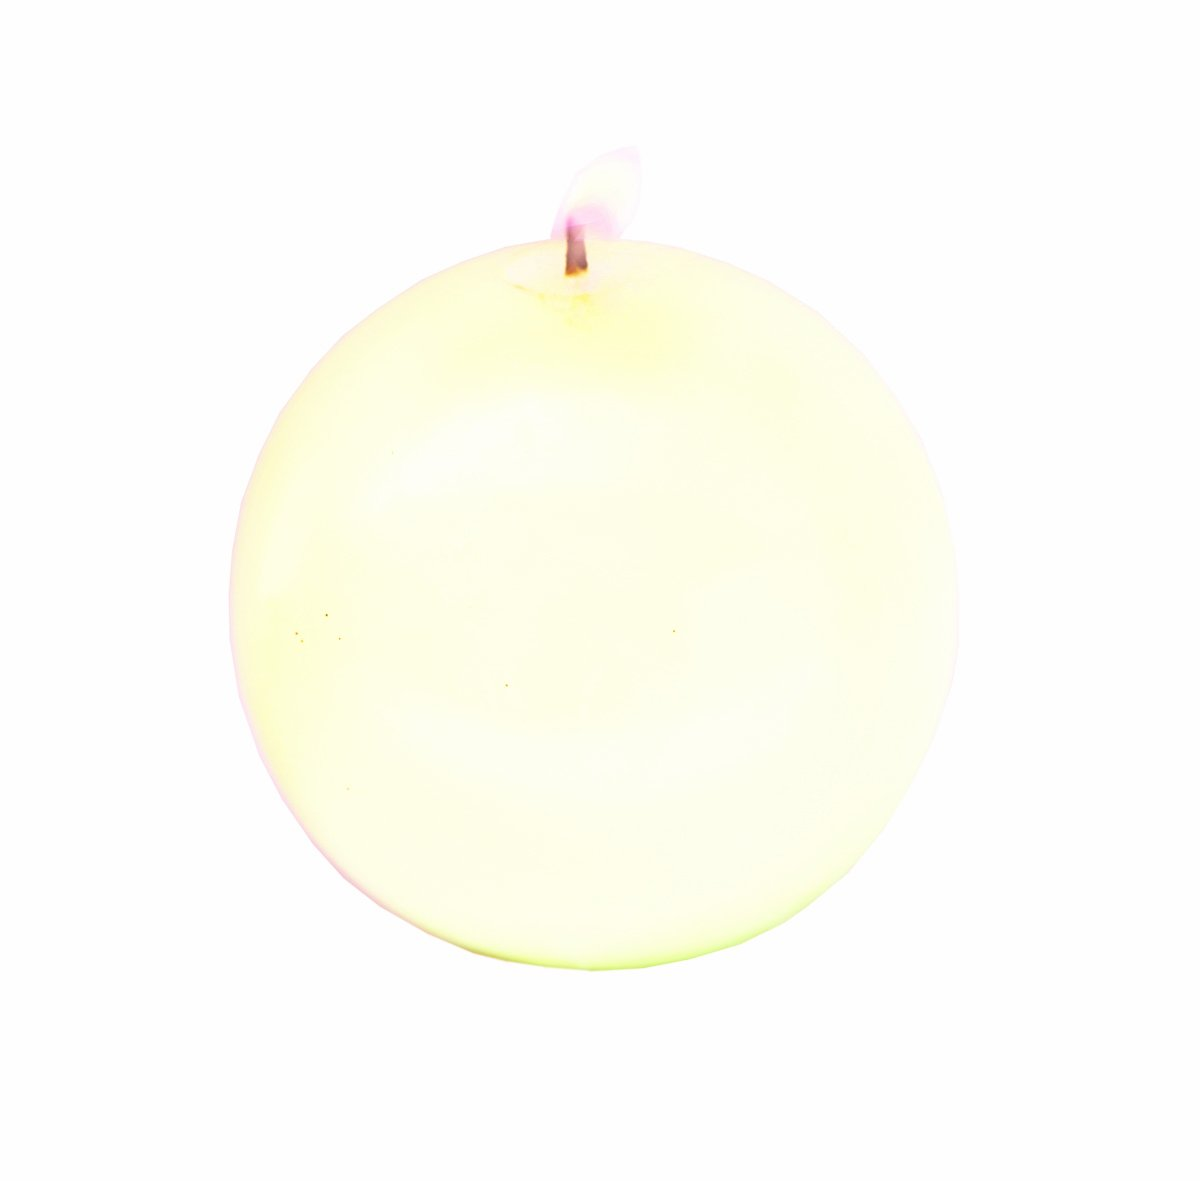 Biedermann Round-Shaped 4-Inch Diameter Ball Candles, Cream, Set of 6 by Biedermann & Sons